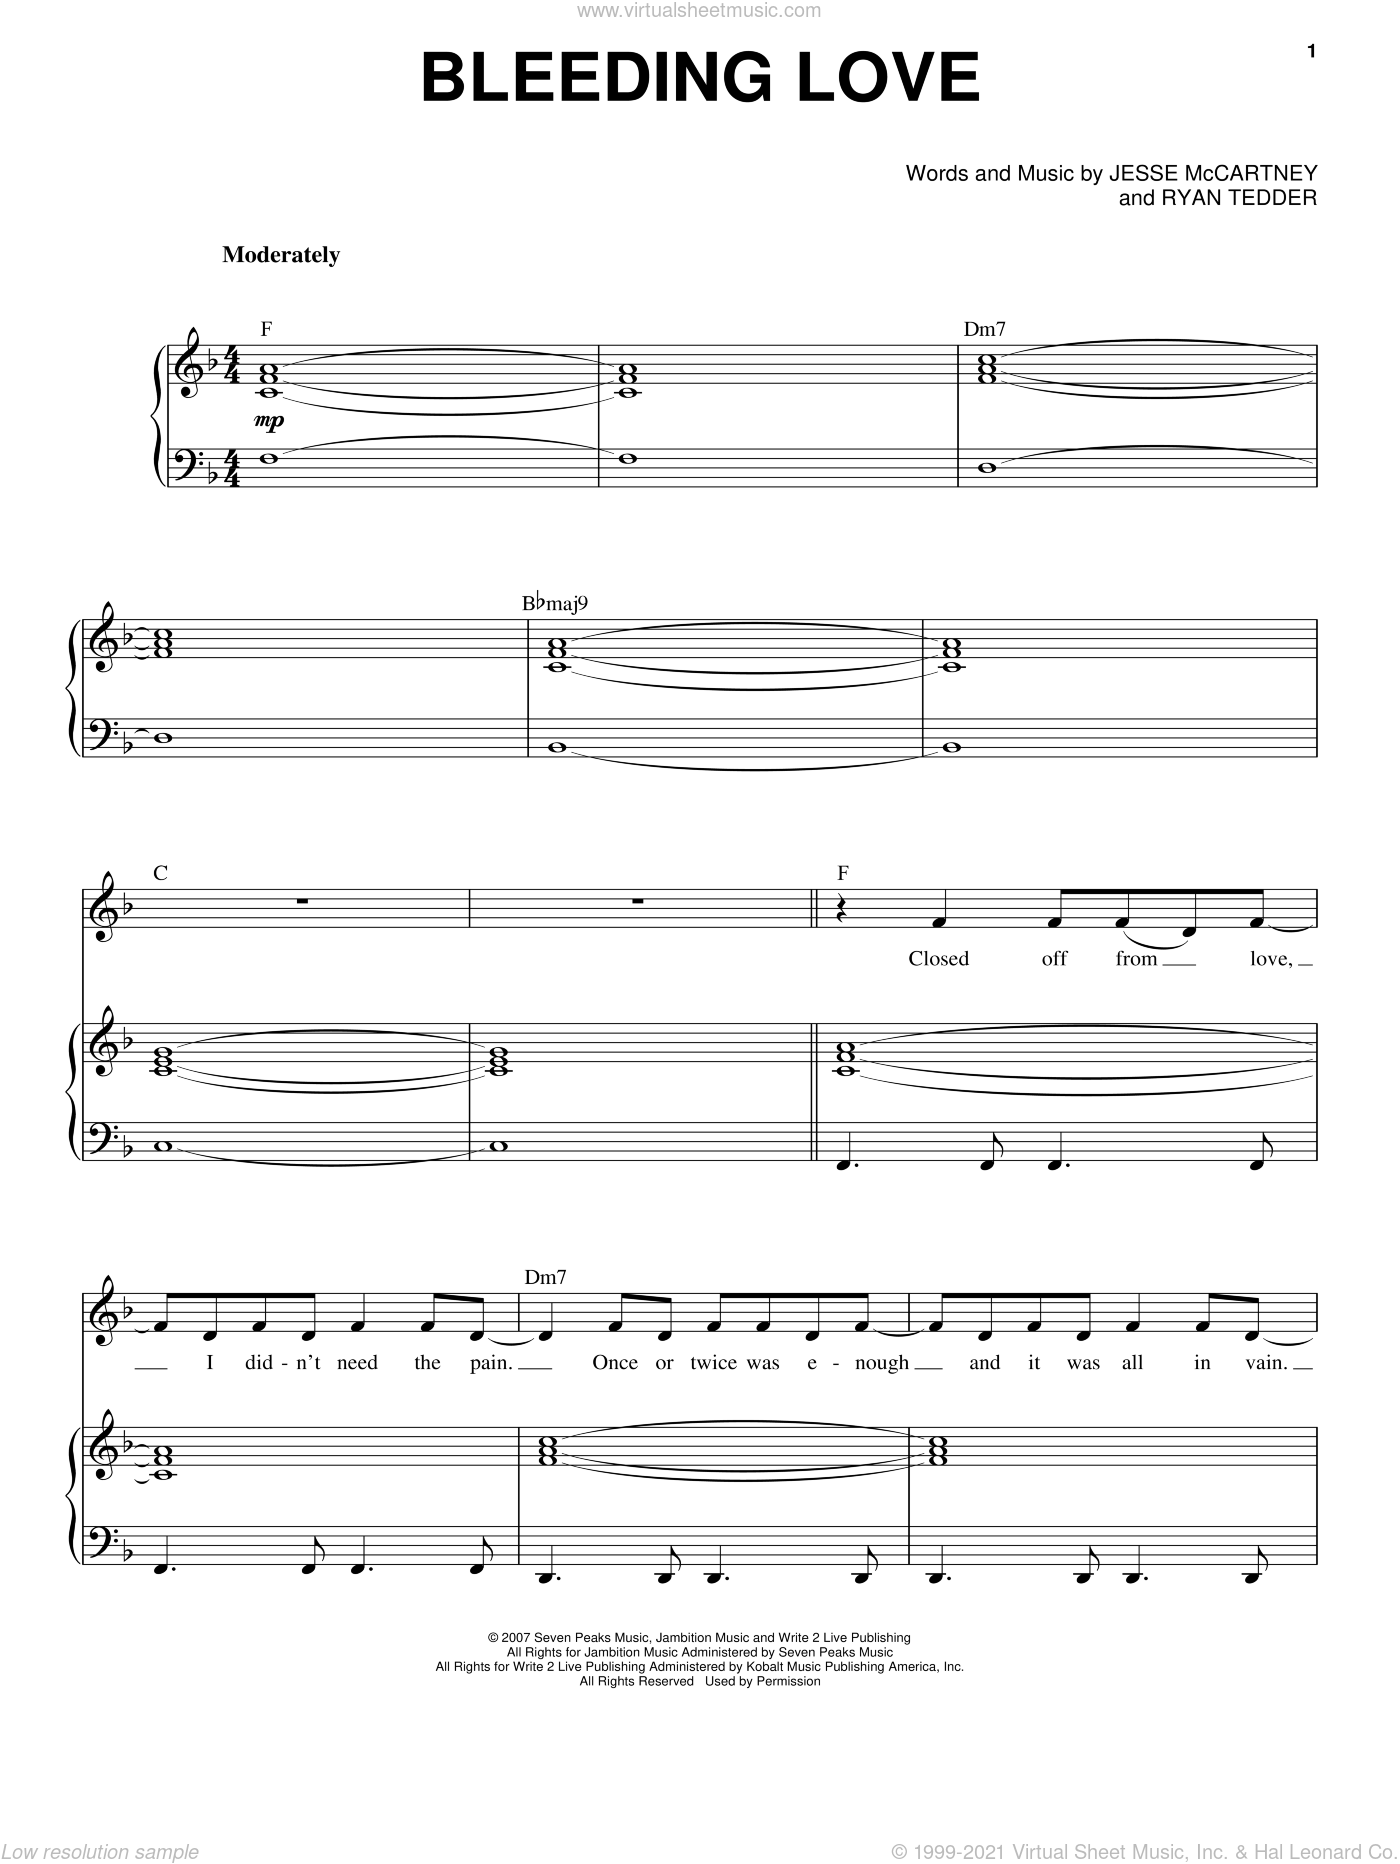 Bleeding Love sheet music for voice and piano by Leona Lewis, Jesse McCartney and Ryan Tedder, intermediate skill level